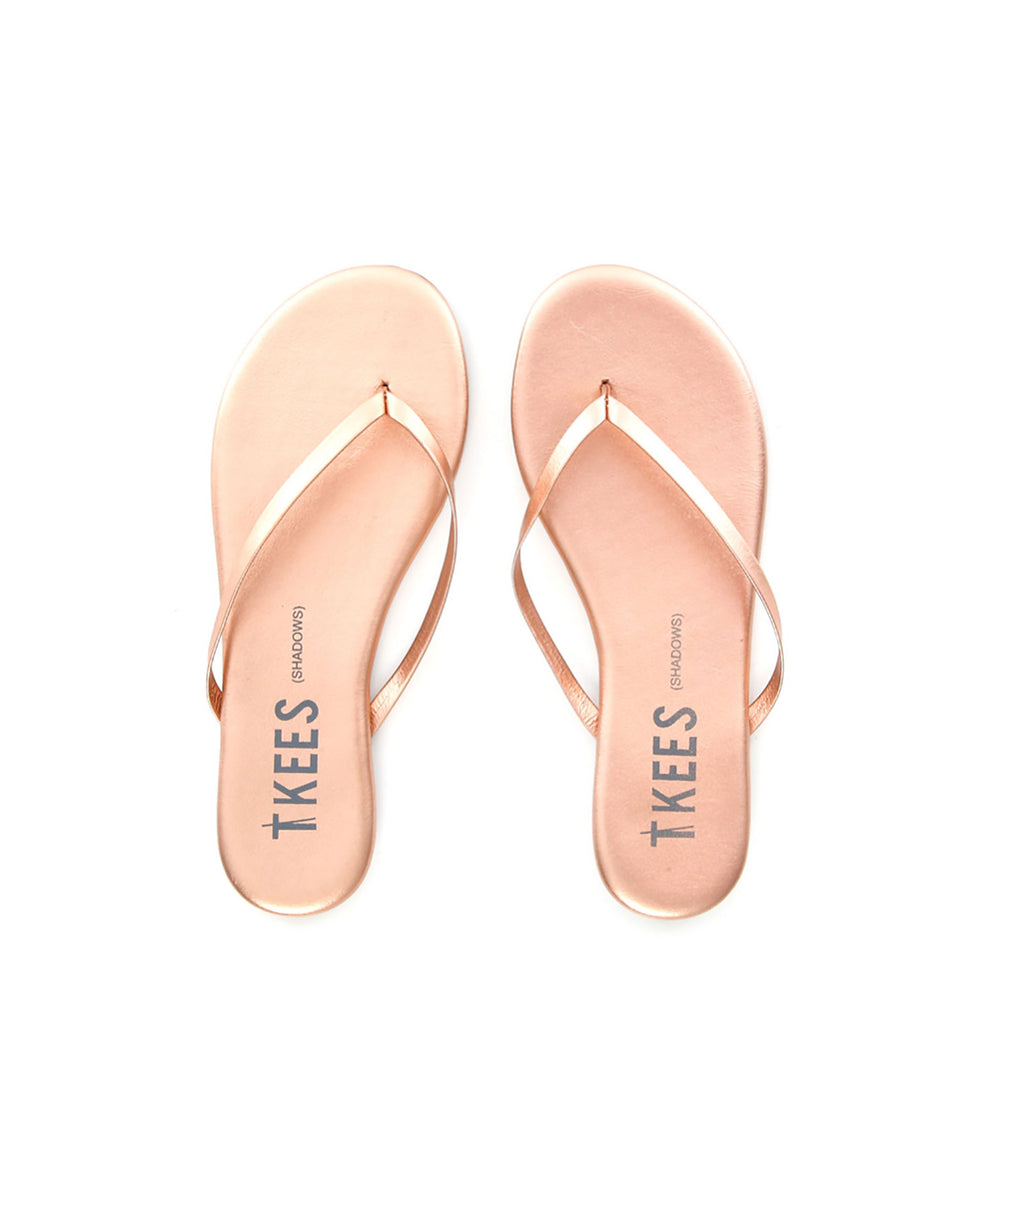 Tkees Women Flip-Flop Beach Pearl